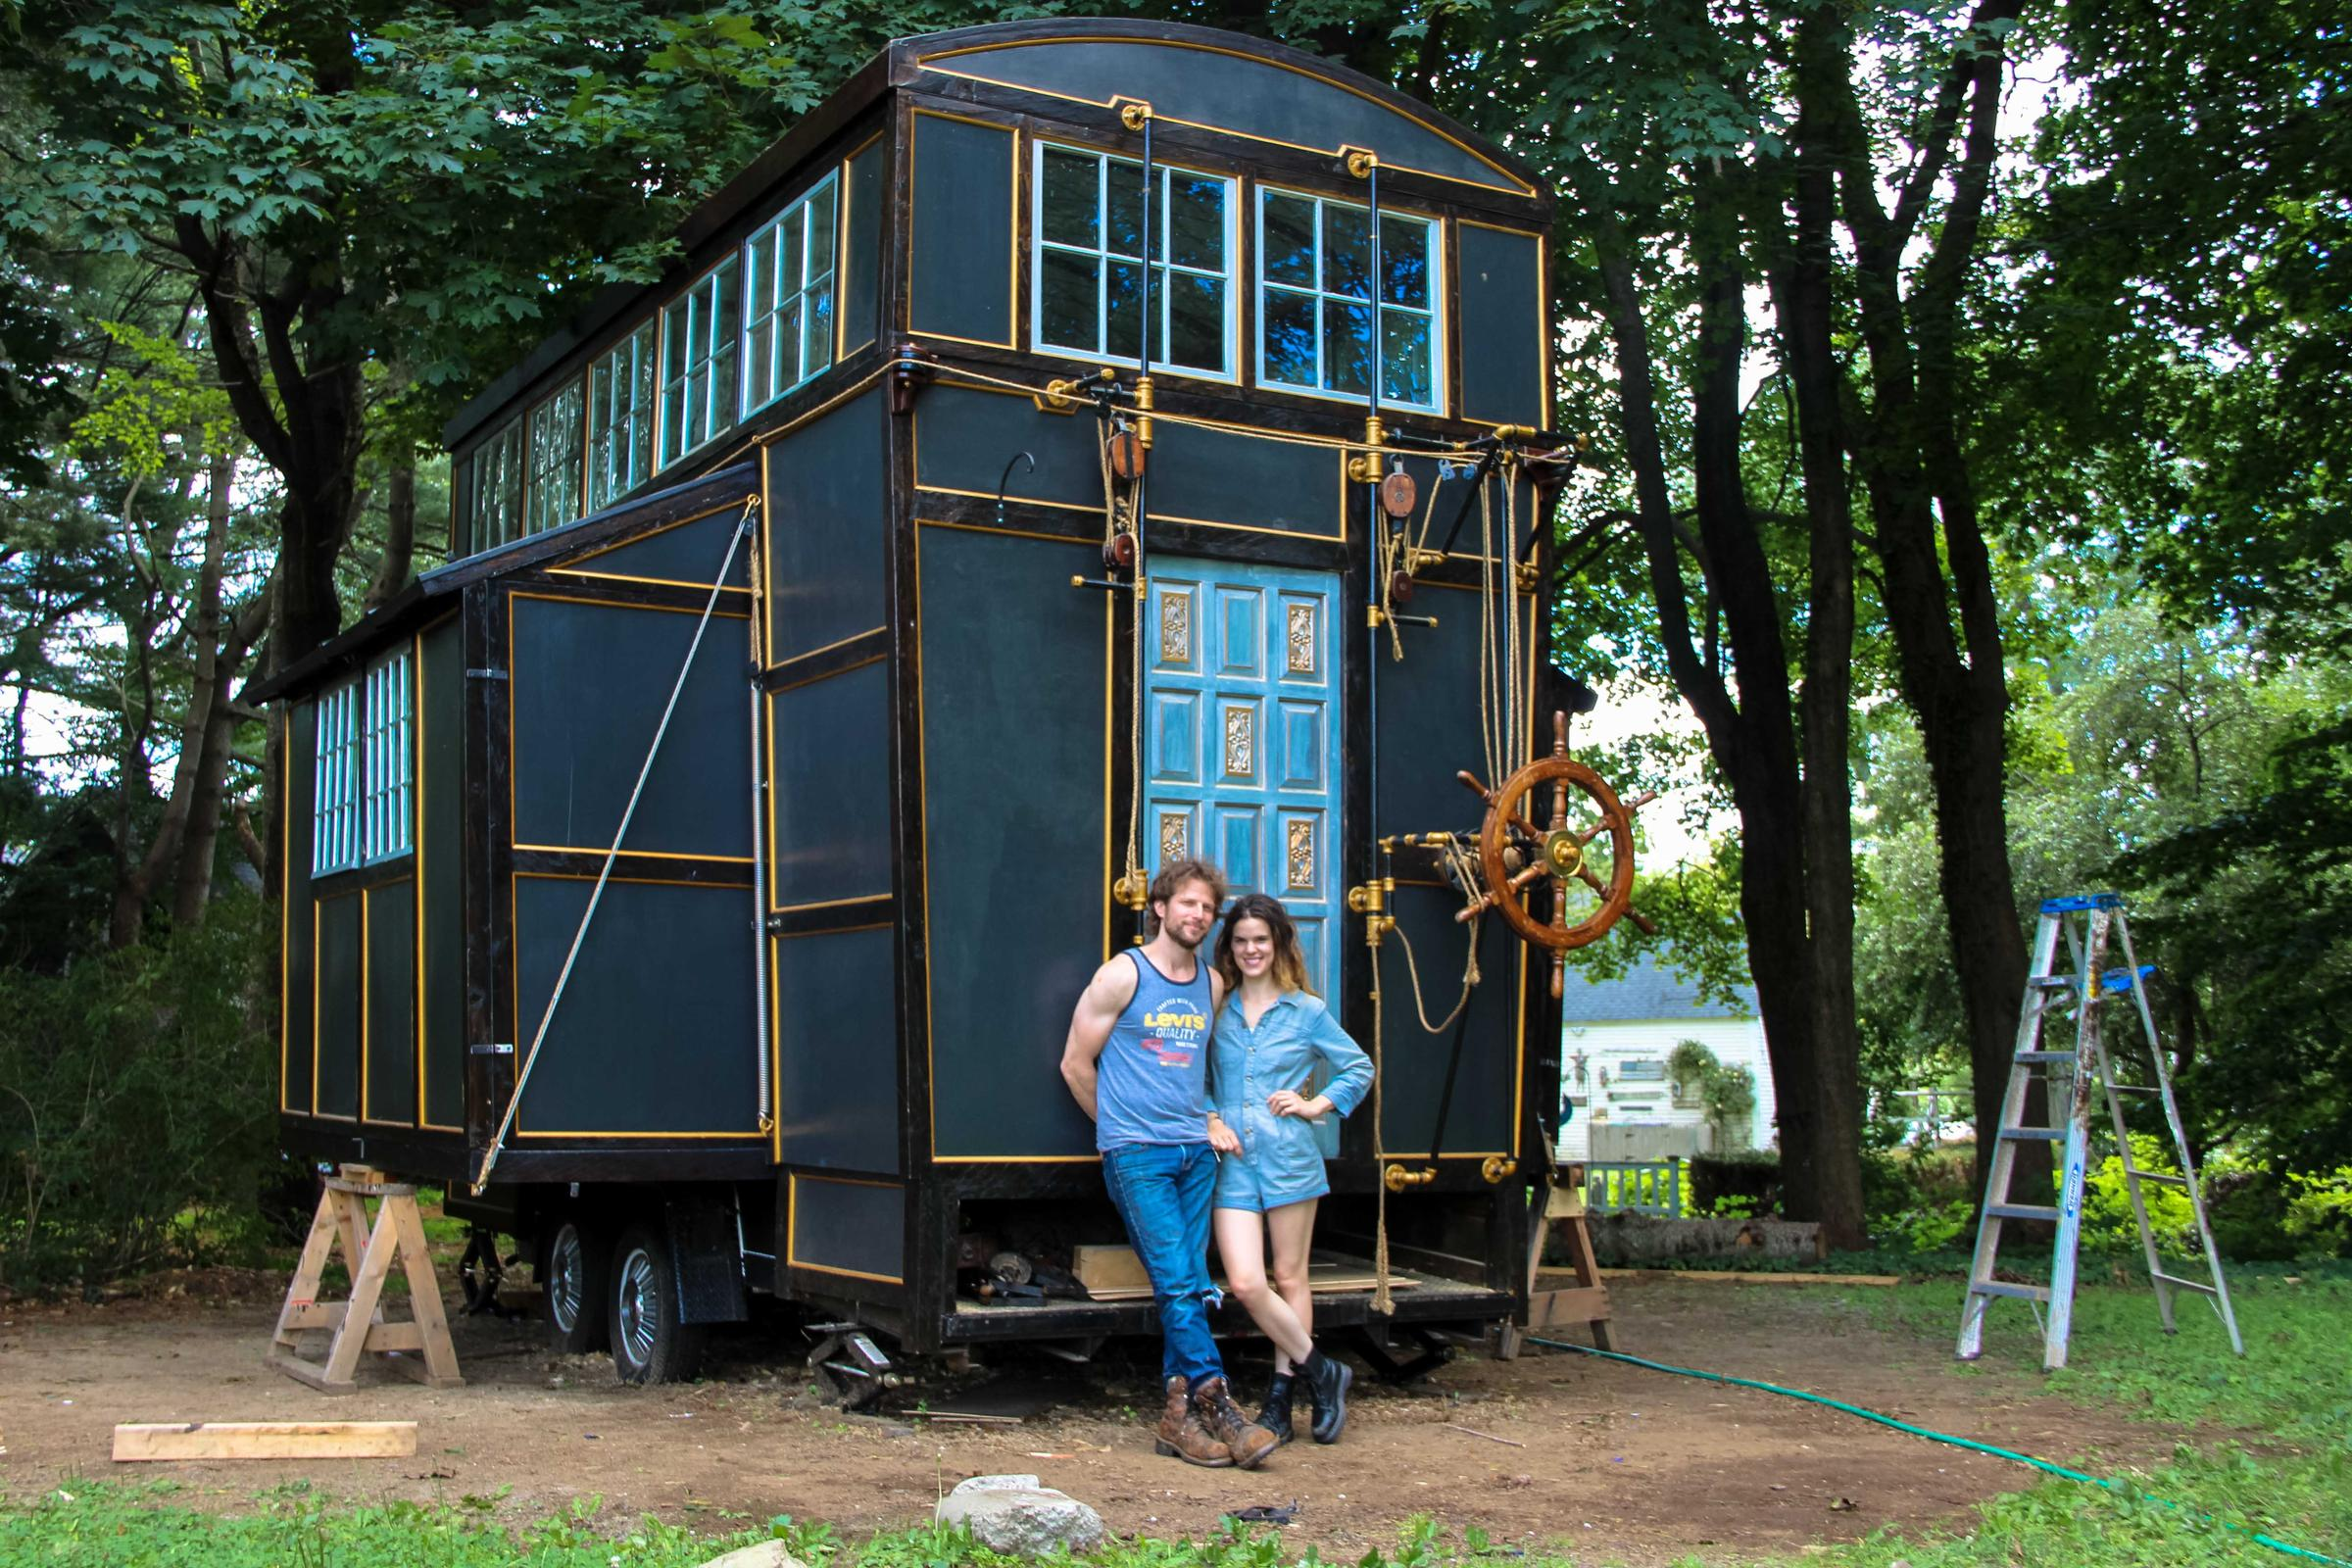 brandon batchelder chloe barcelou and their tiny house contraption - Mini Houses On Wheels